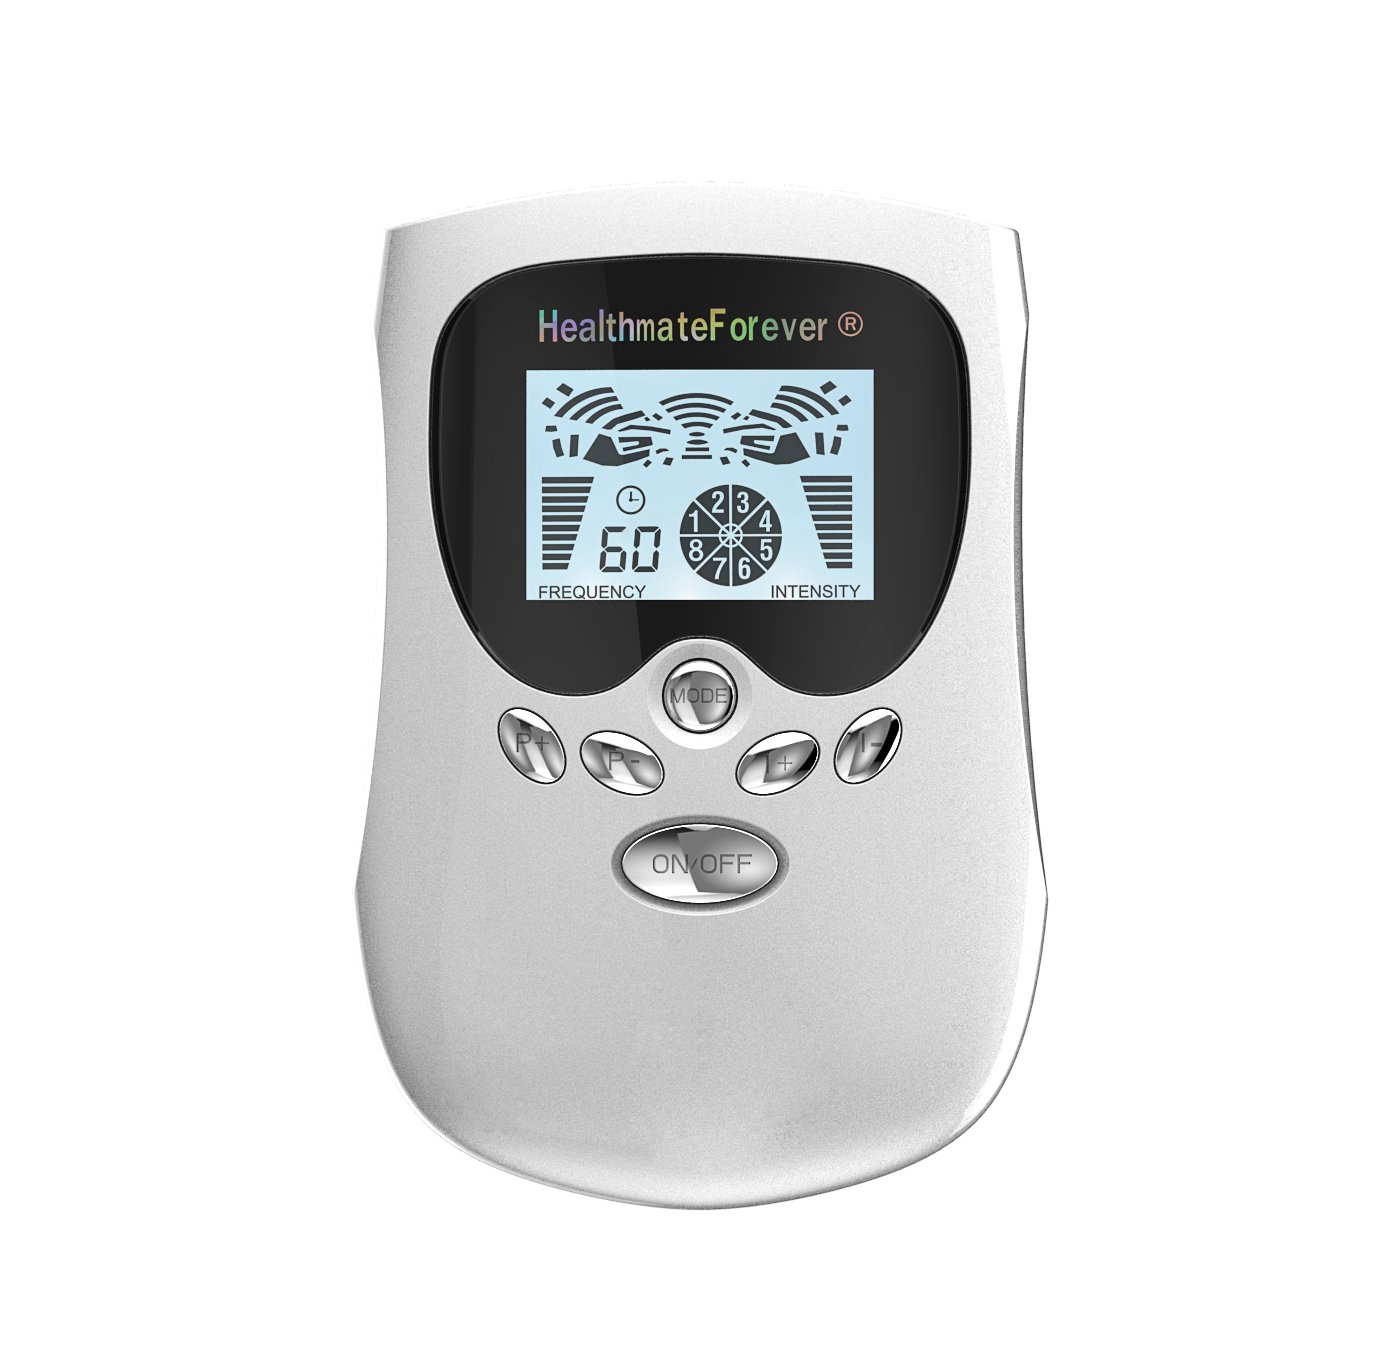 PM8 HealthmateForever TENS Unit Electrical Muscle Stimulator White + 2 Pairs of Pads